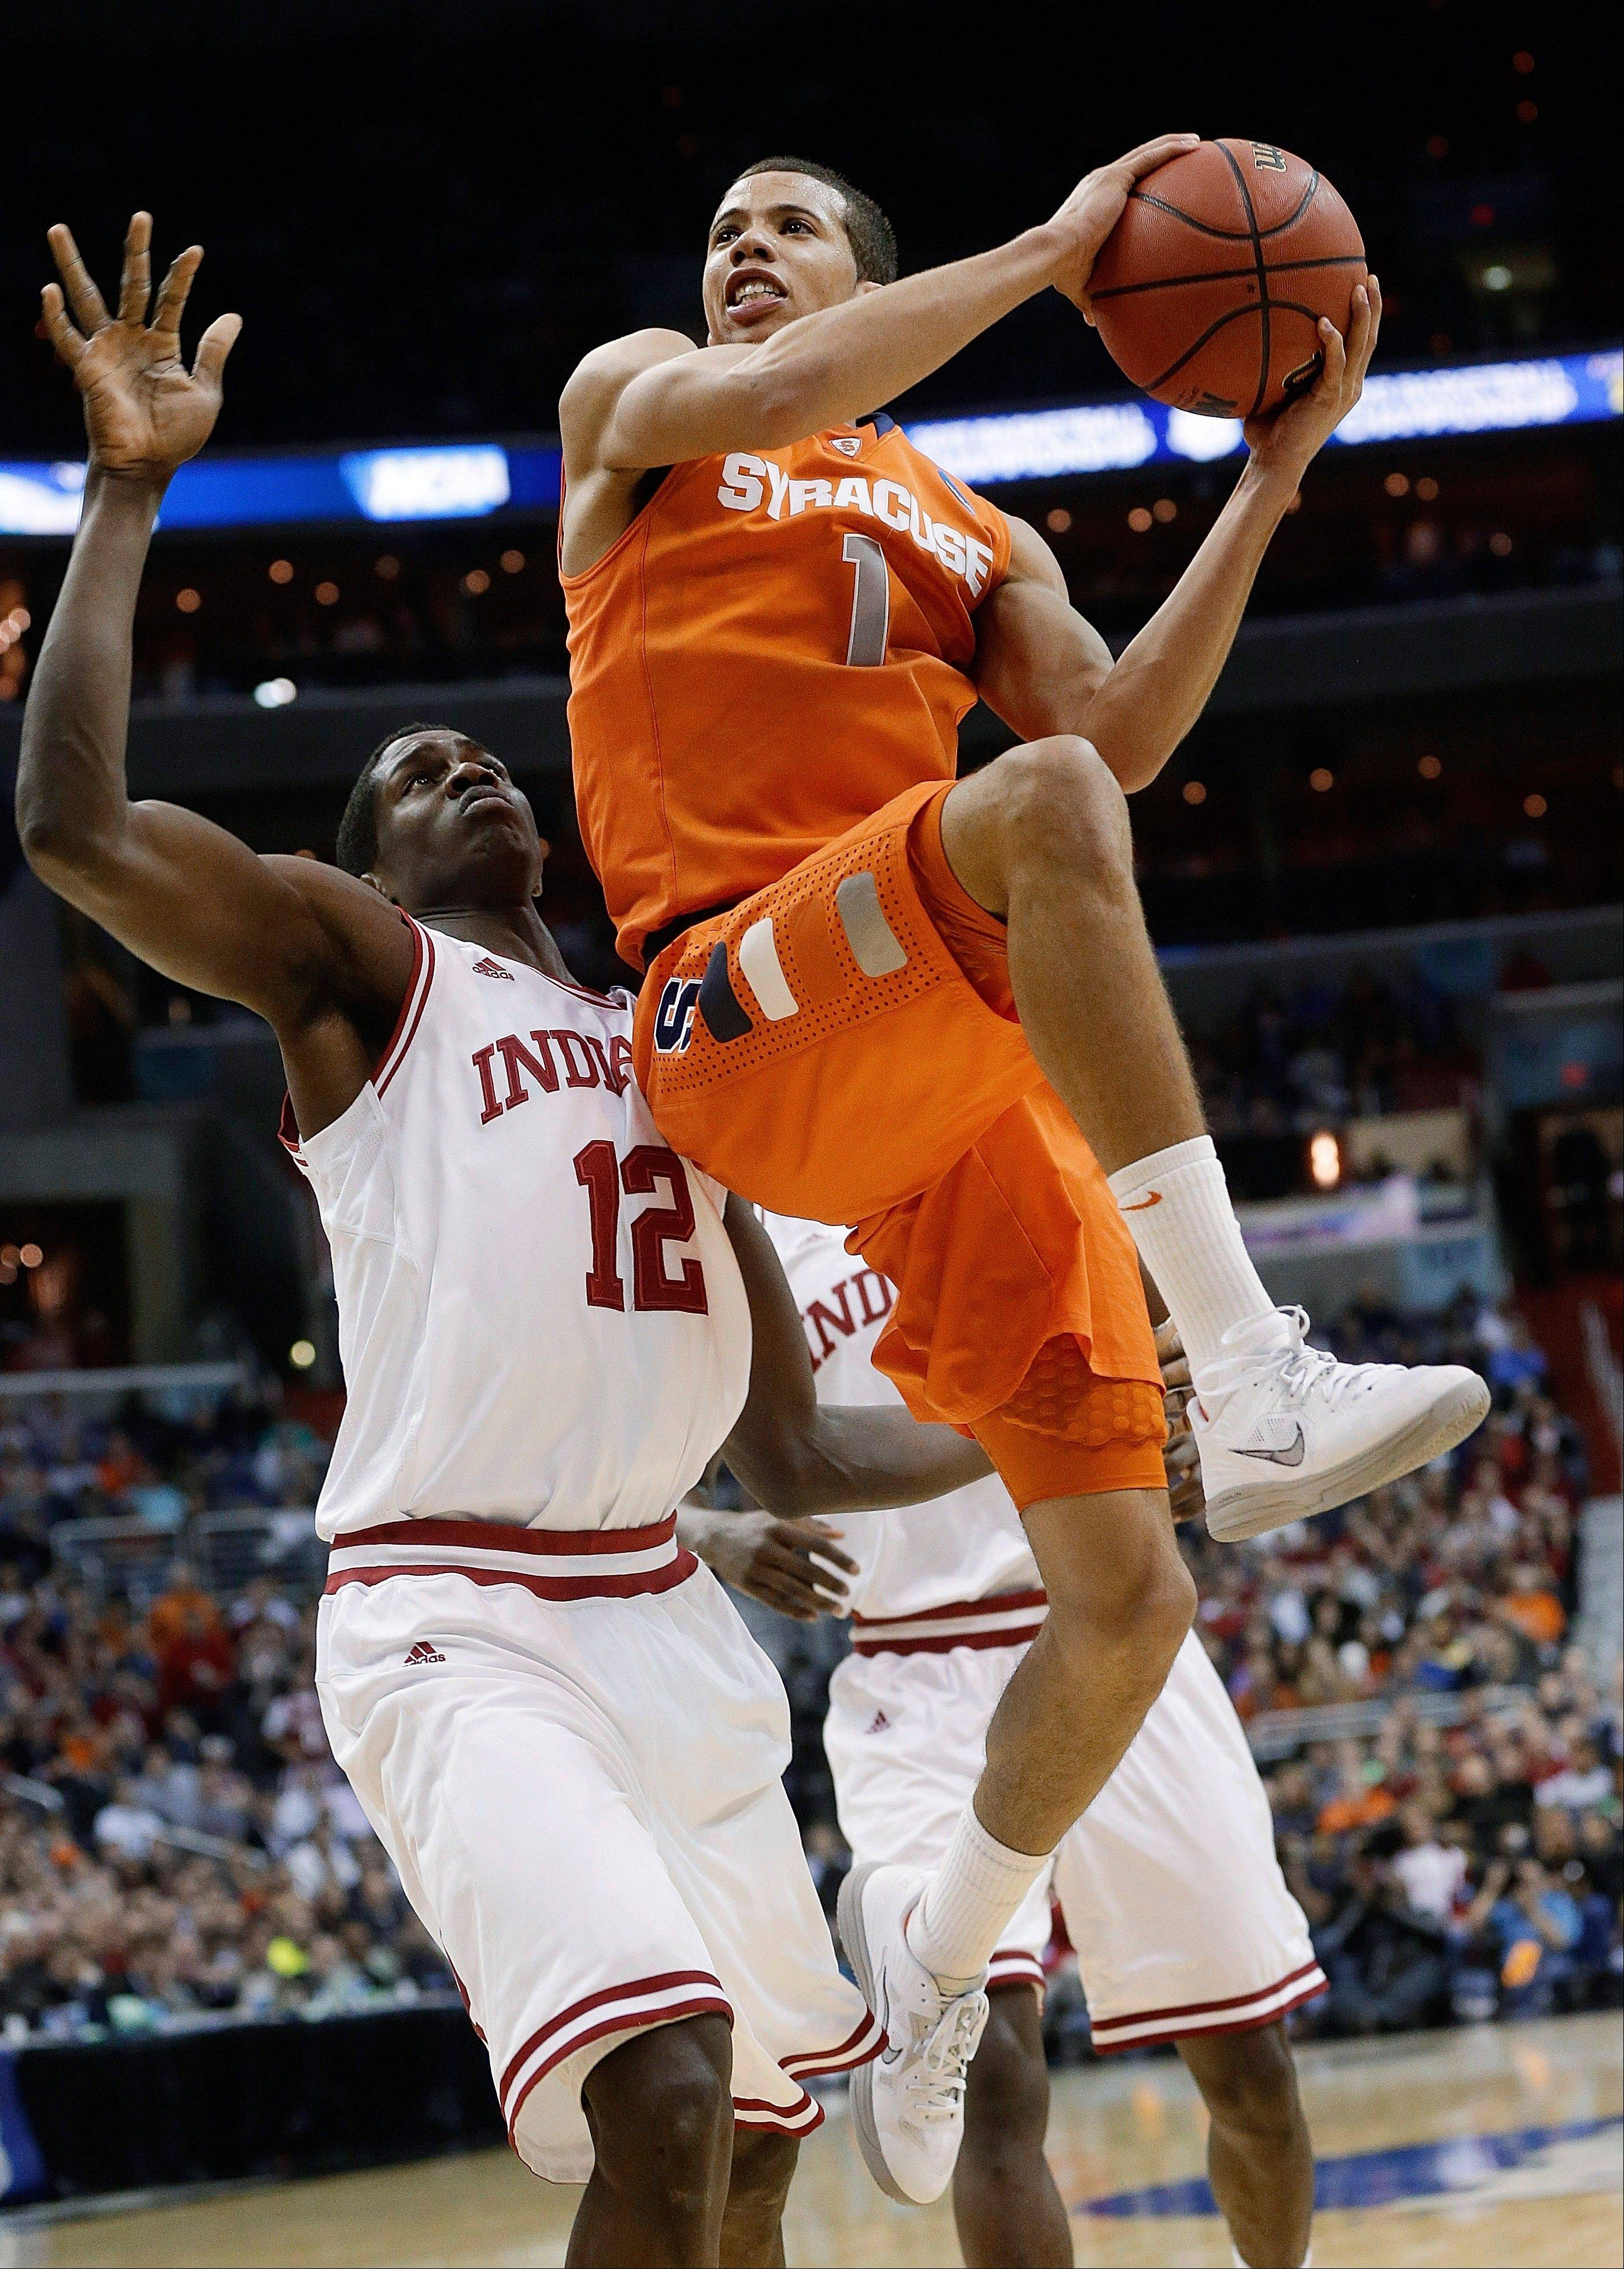 Syracuse guard Michael Carter-Williams (1) goes up past Indiana forward Hanner Mosquera-Perea (12) during the second half of an East Regional semifinal in the NCAA men's college basketball tournament, Thursday, March 28, 2013, in Washington.